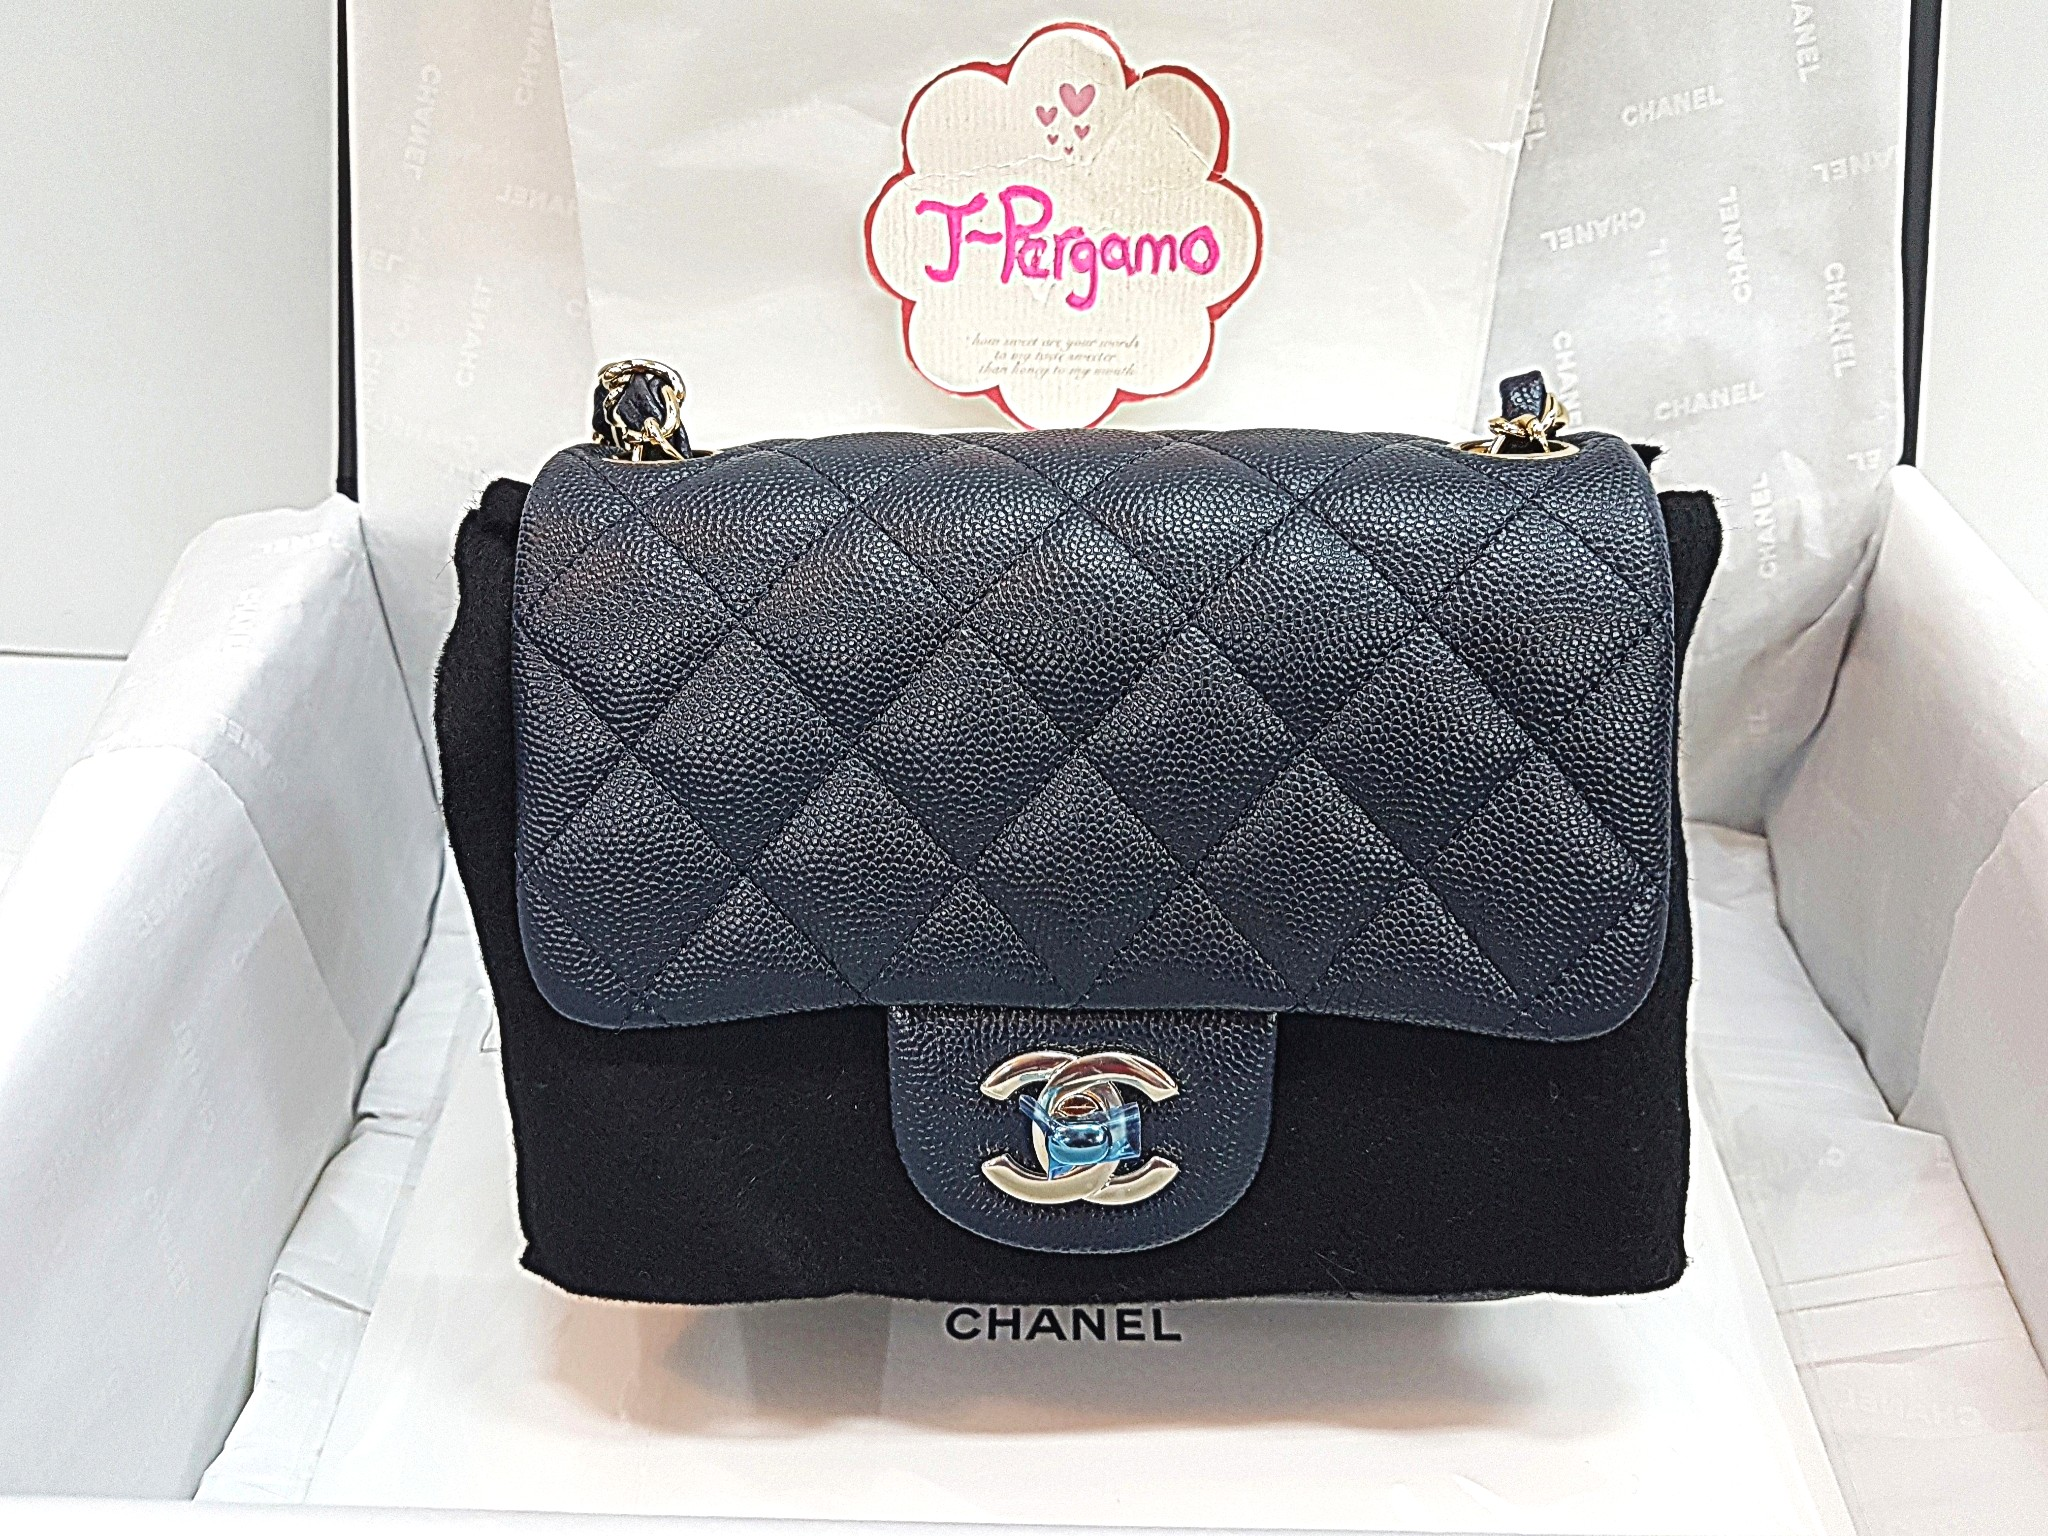 Chanel Quilted Mini Square Flap Bag Gold hardware    Only For Sale       No  Trade       Fixed Price Non-Neg       定价   , Luxury, Bags   Wallets,  Handbags ... 4c0ad2eb8a